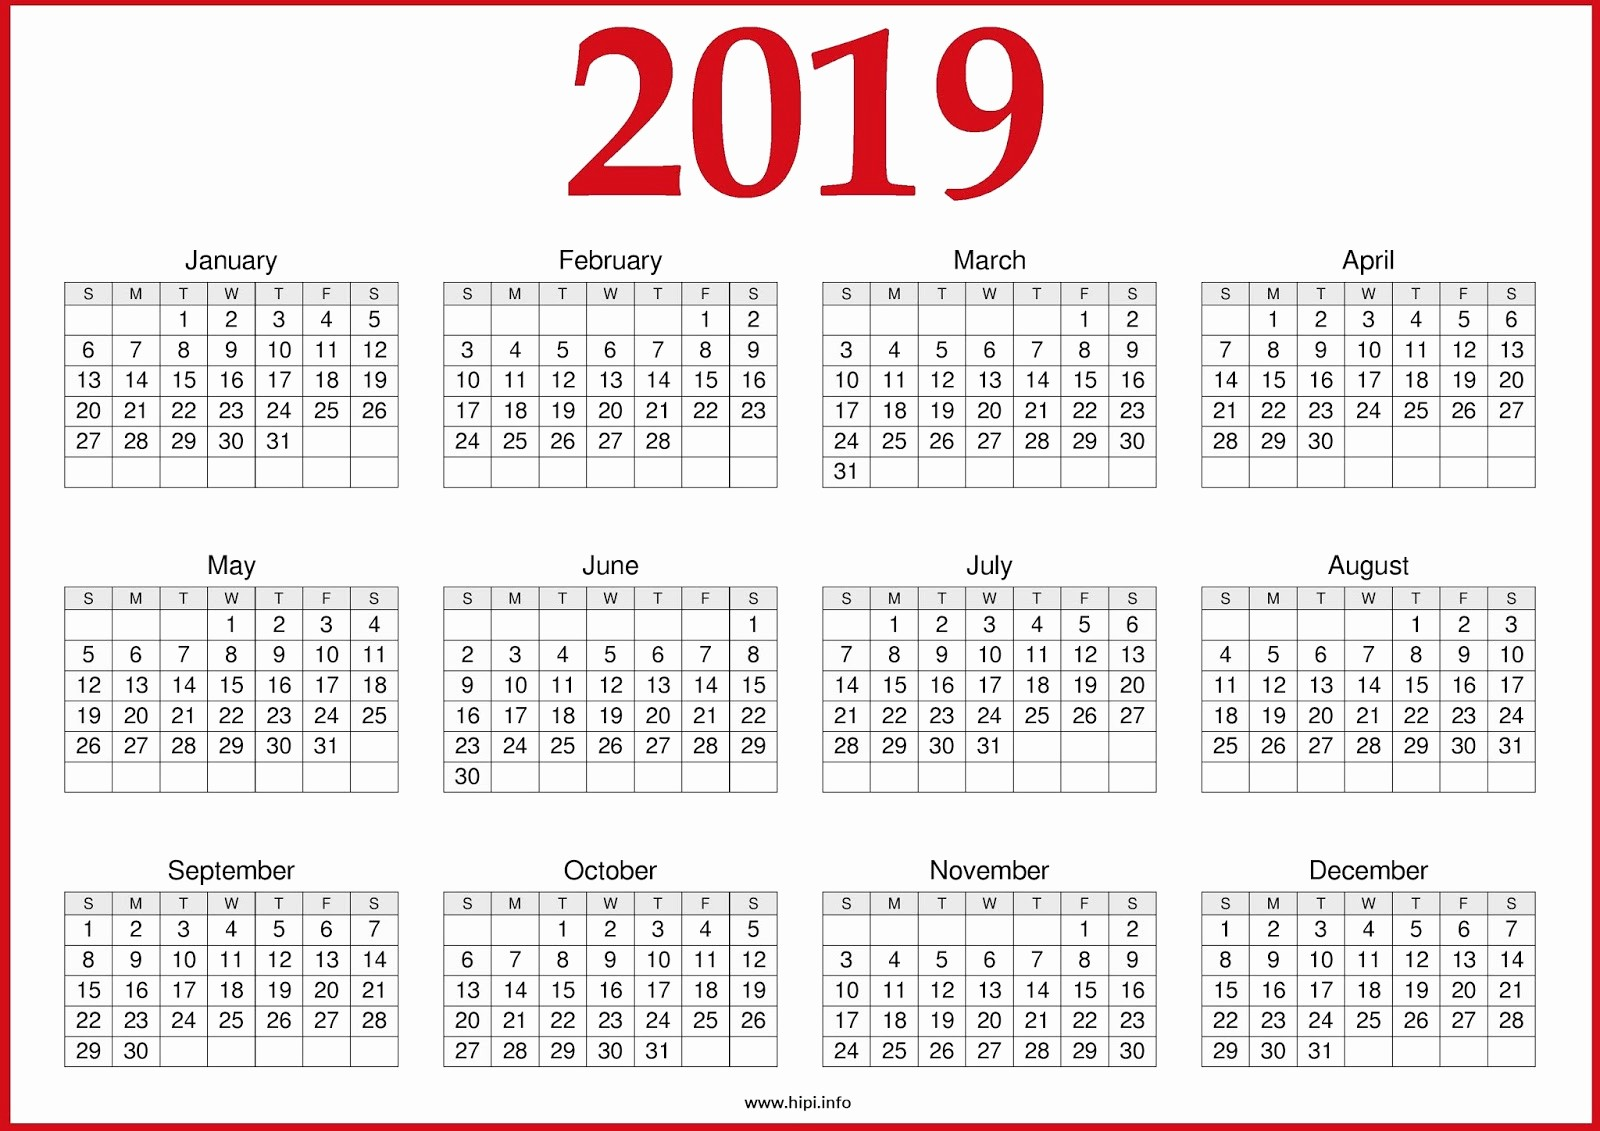 2019 Yearly Calendar One Page Inspirational 2019 Year to Page Calendar Swifte